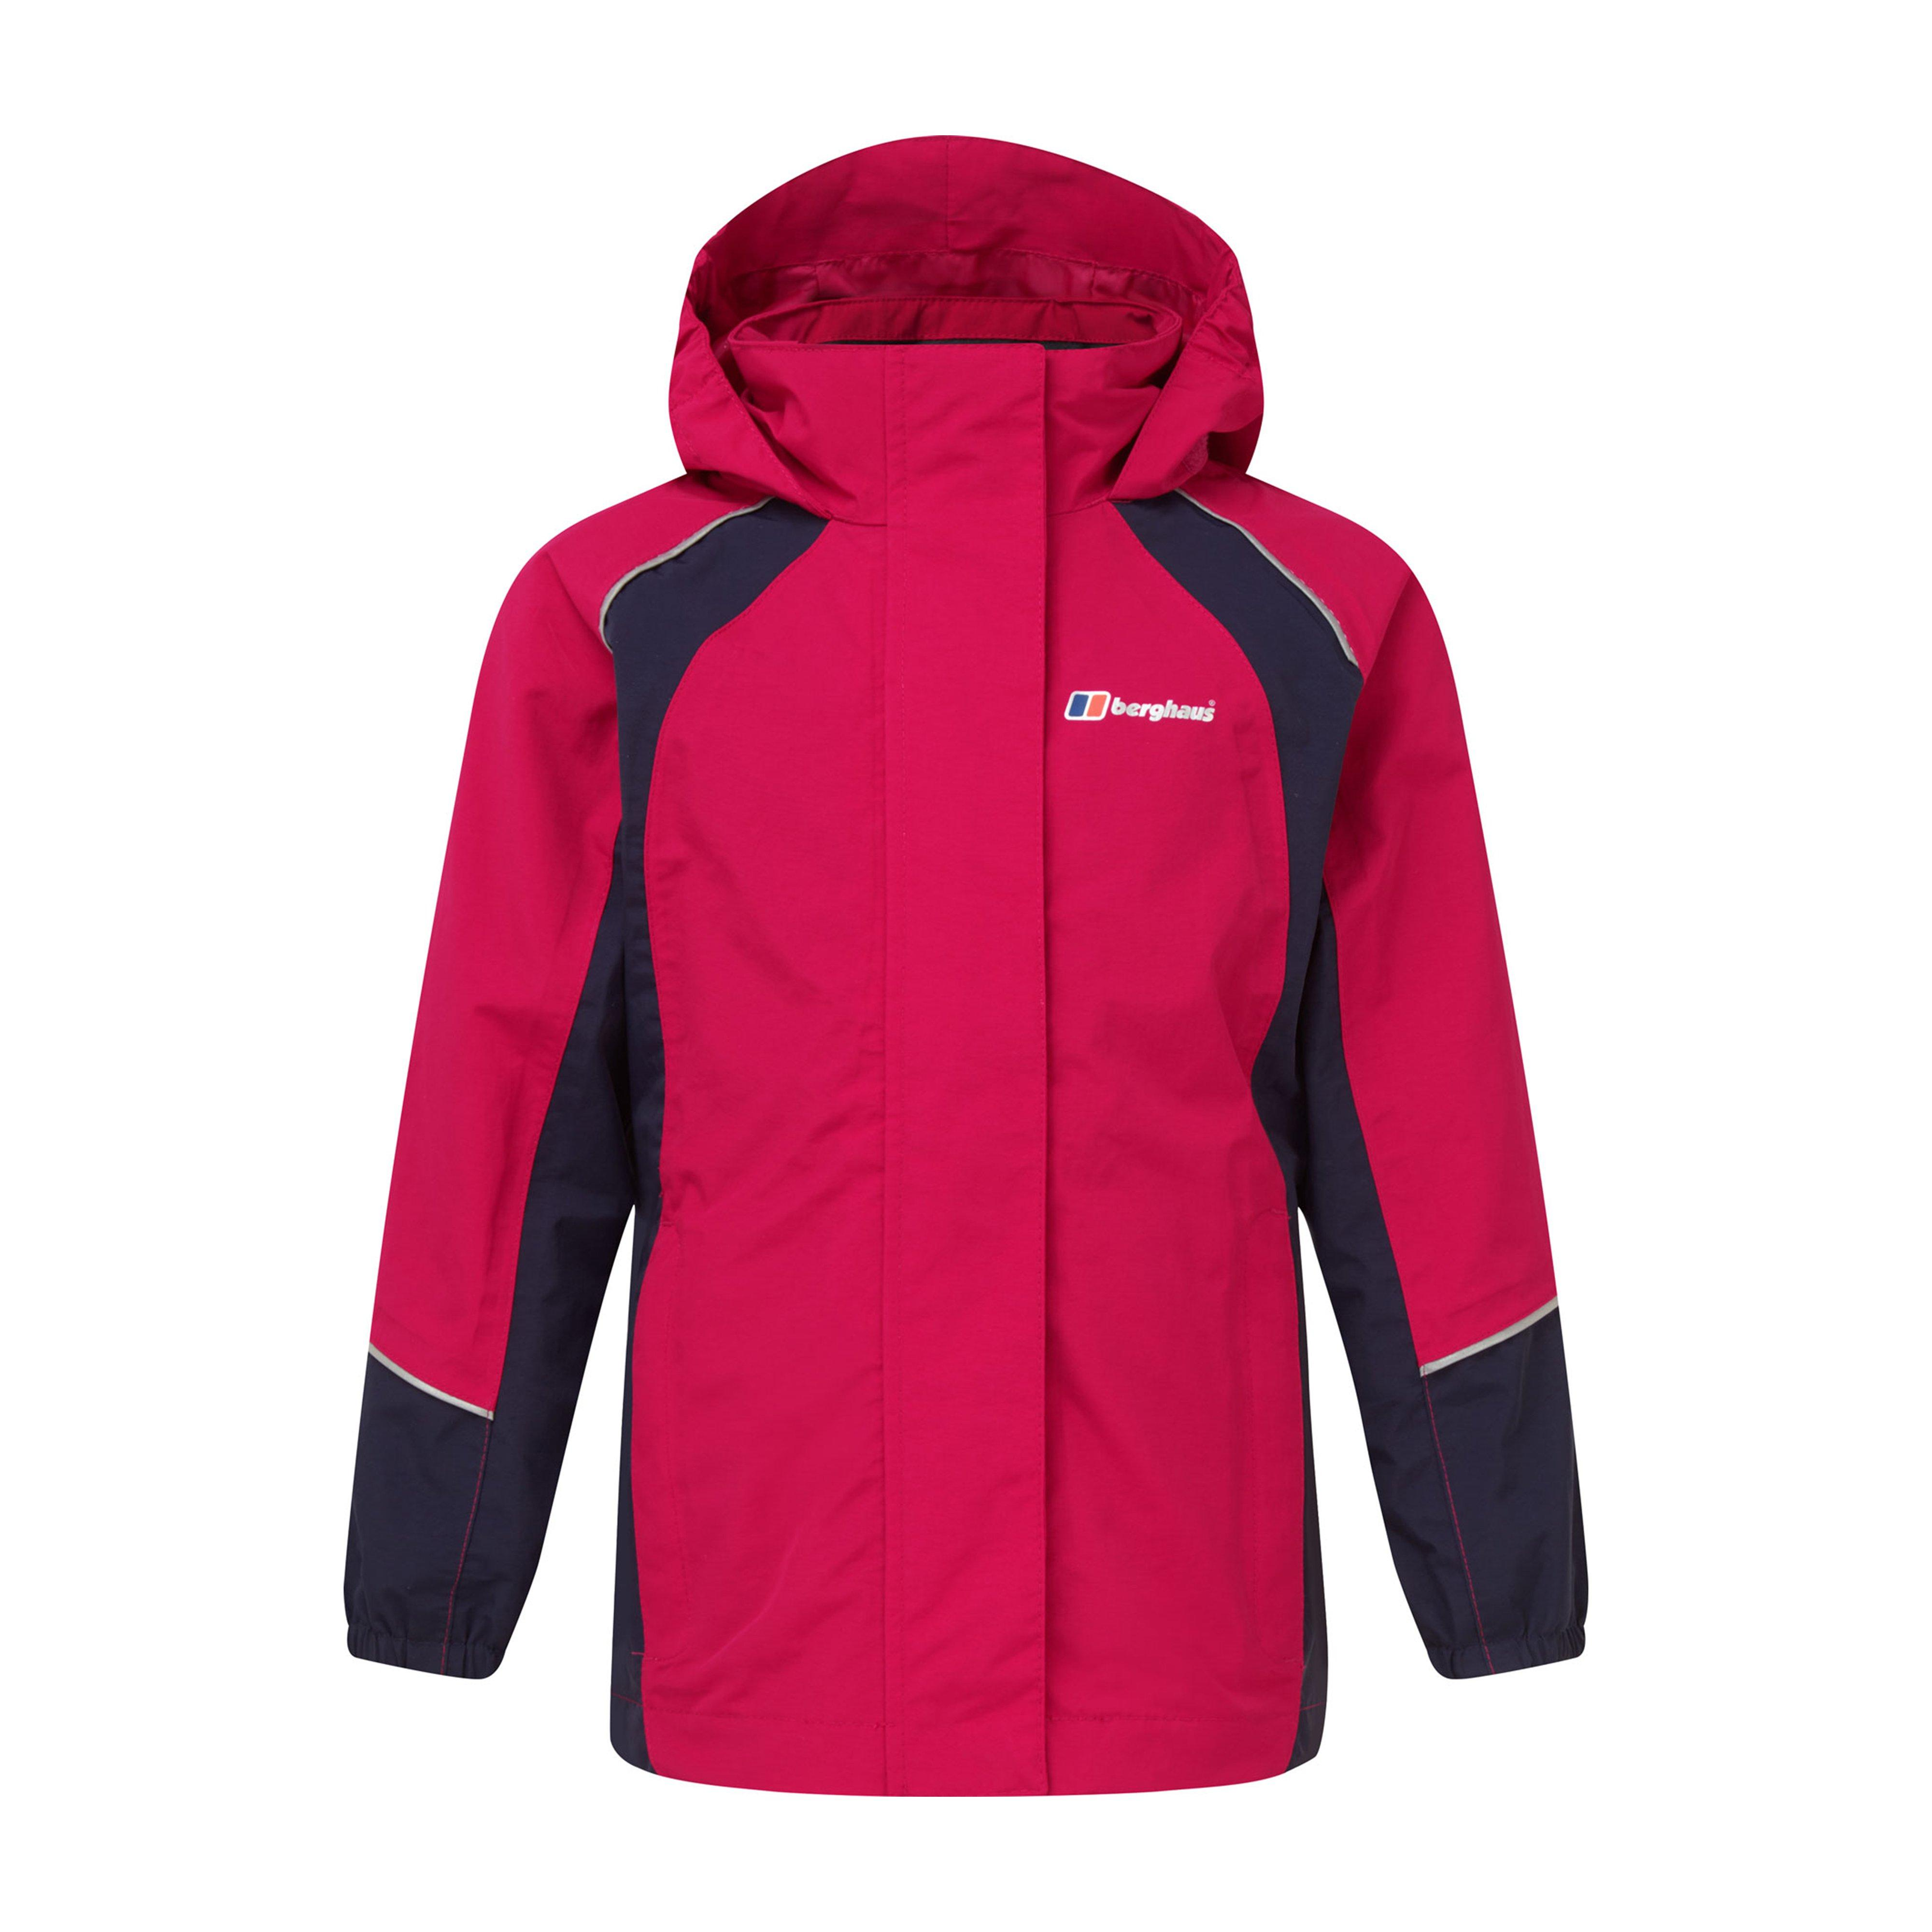 Berghaus Kids Bowood Waterproof Jacket